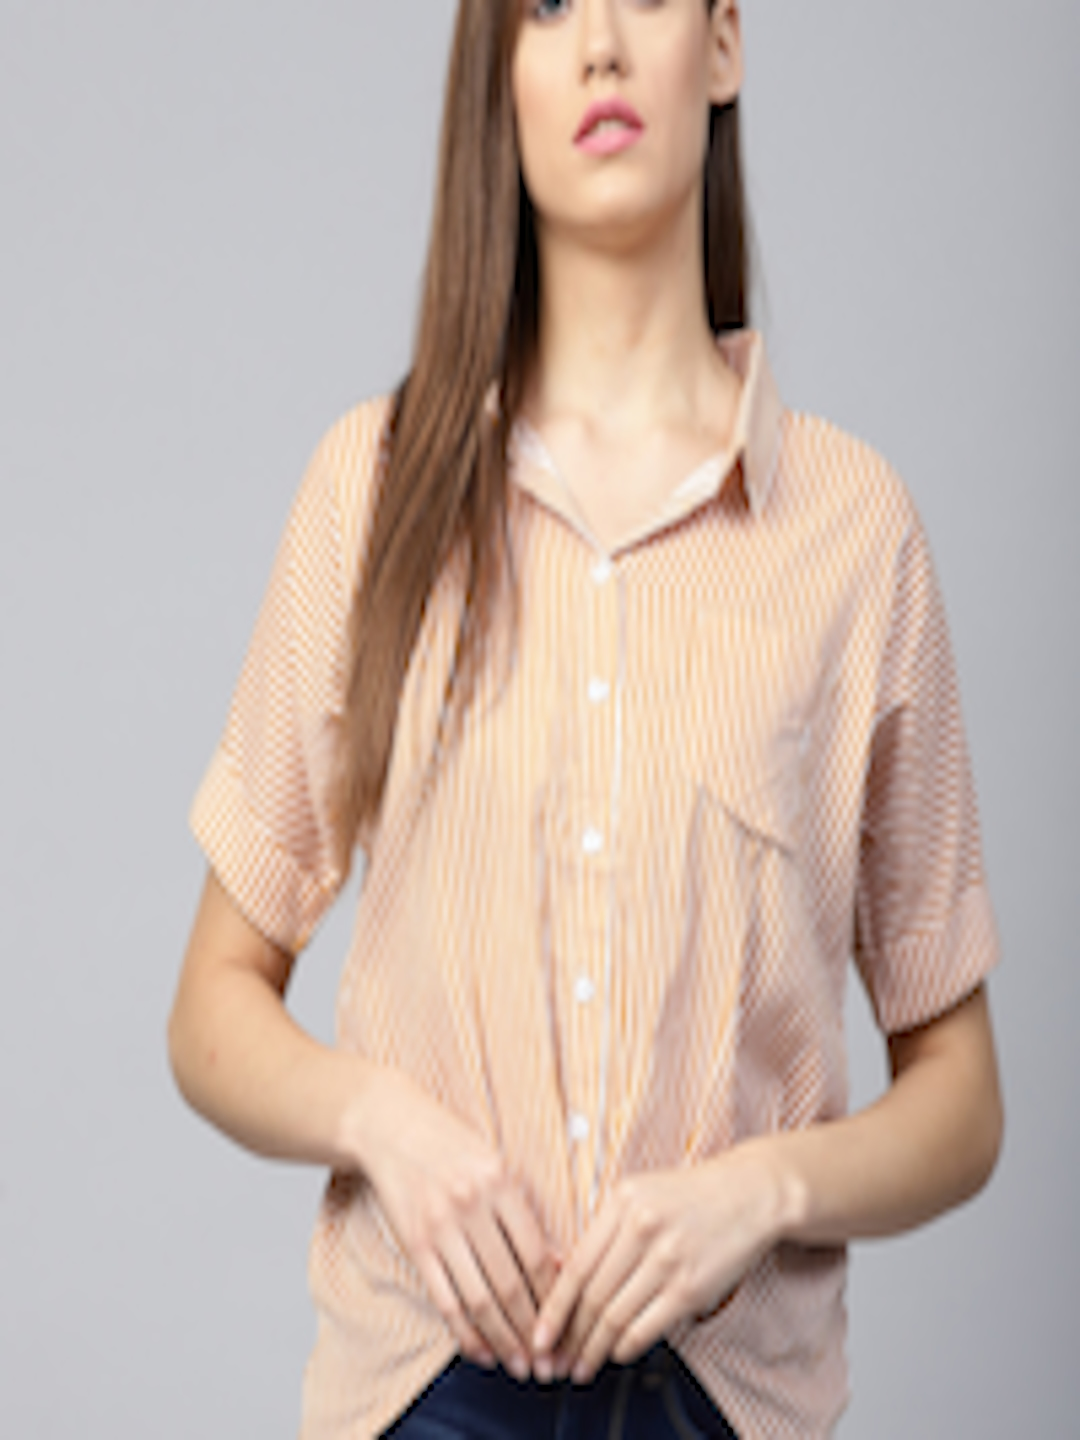 536904db36c33 Buy Athena Women Mustard Yellow   Off White Striped Shirt Style Top - Tops  for Women 7190488